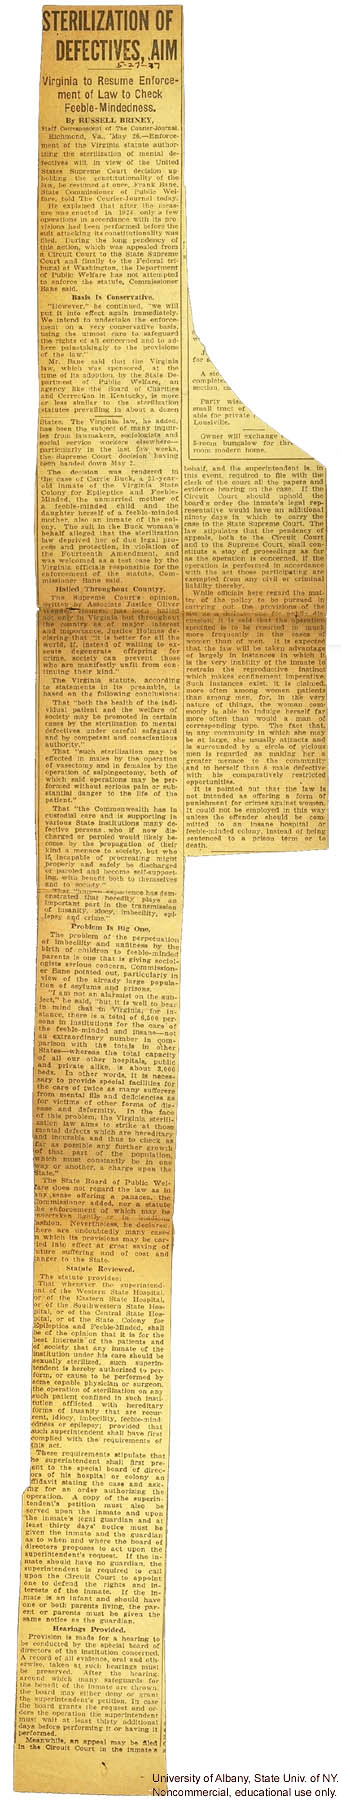 """Sterilization of Defectives, Aim,"" report on Buck v. Bell Supreme Court Decision, Richmond Courier Journal (5/26/1927)"